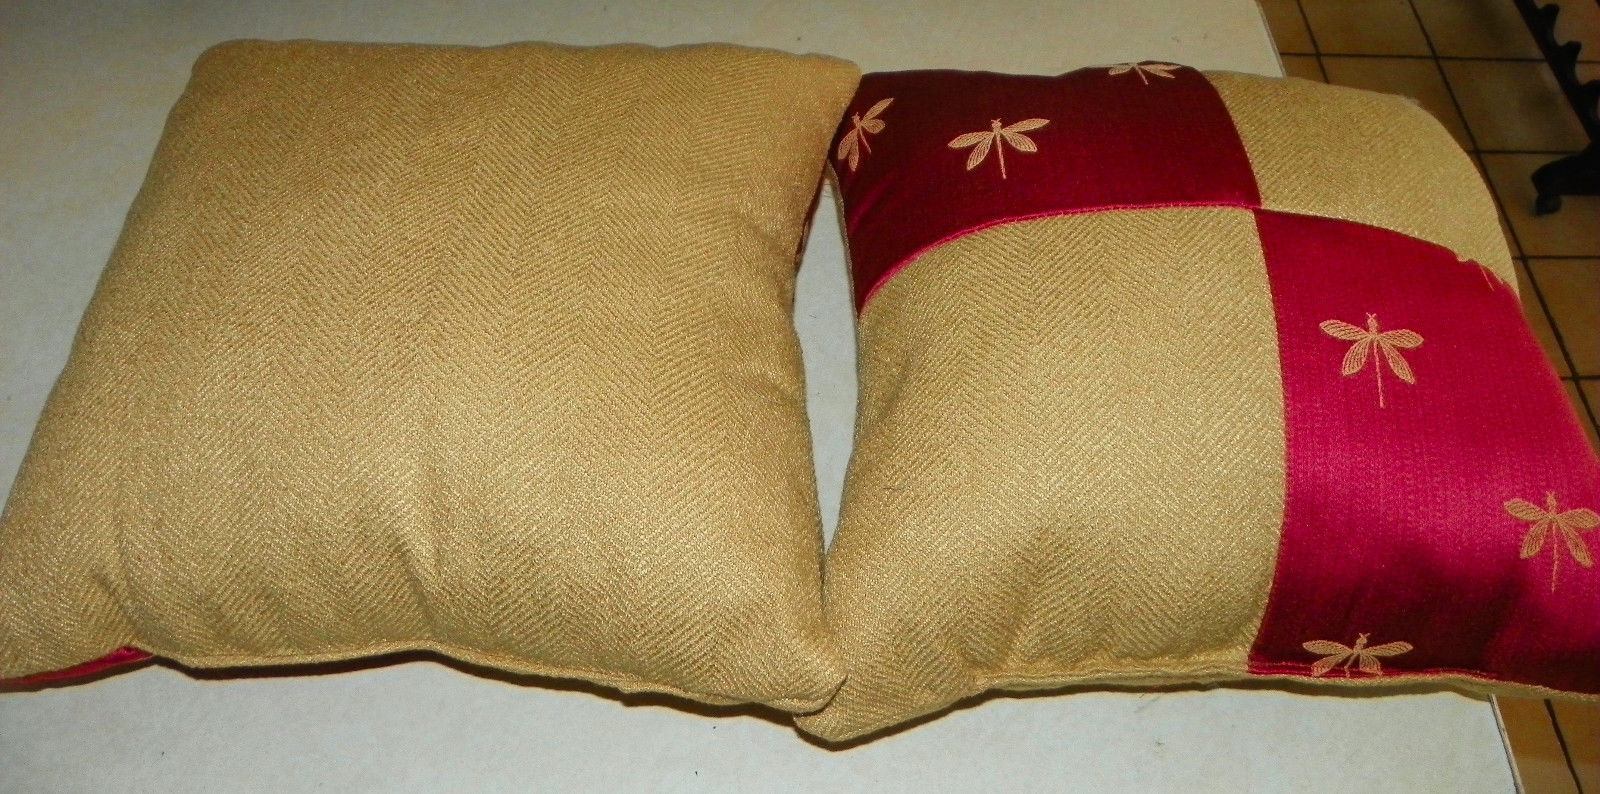 Pair of Gold Persimmon Dragonfly Print Throw Pillows 20 x 20